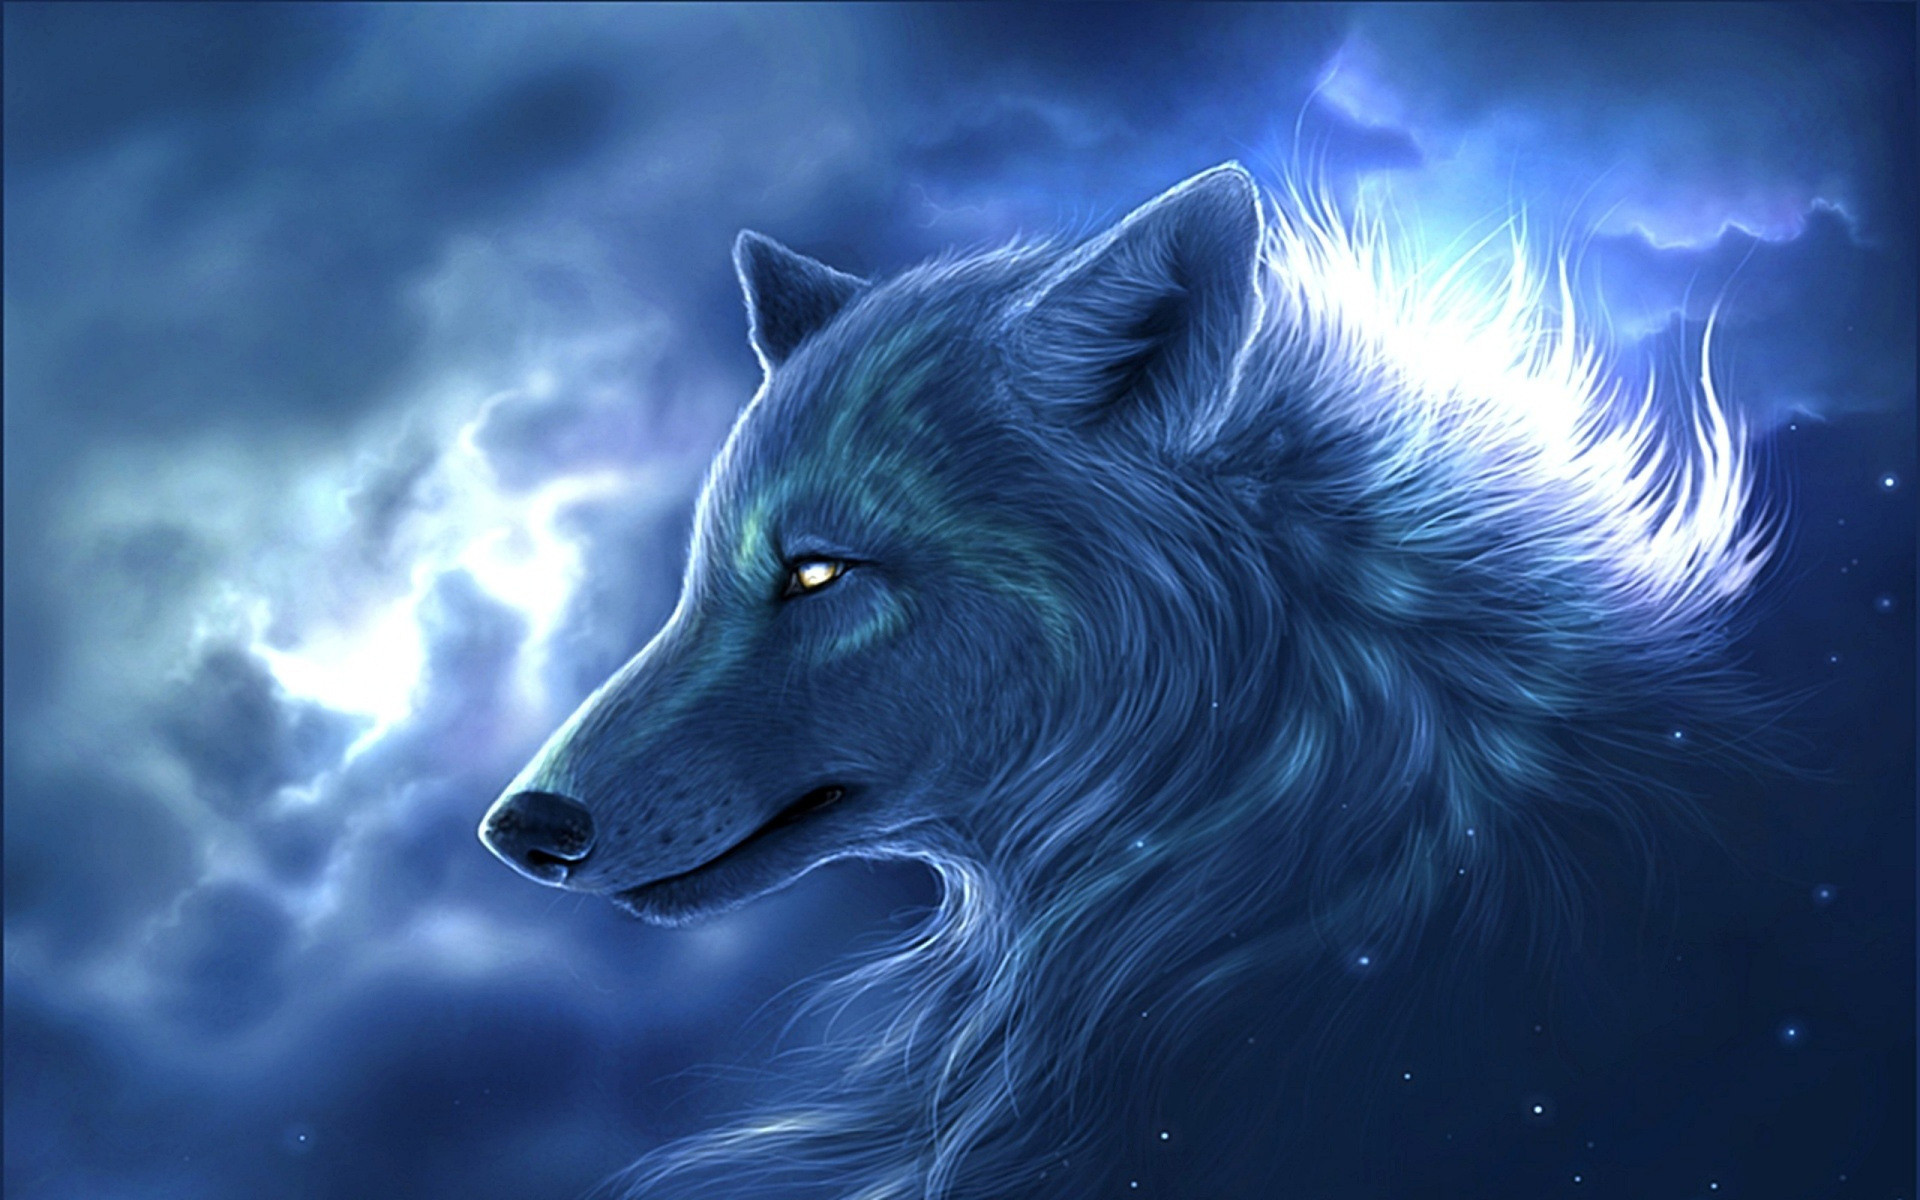 1920x1200 fantasy art wolf animal hd wallpaper | HD Wallpapers